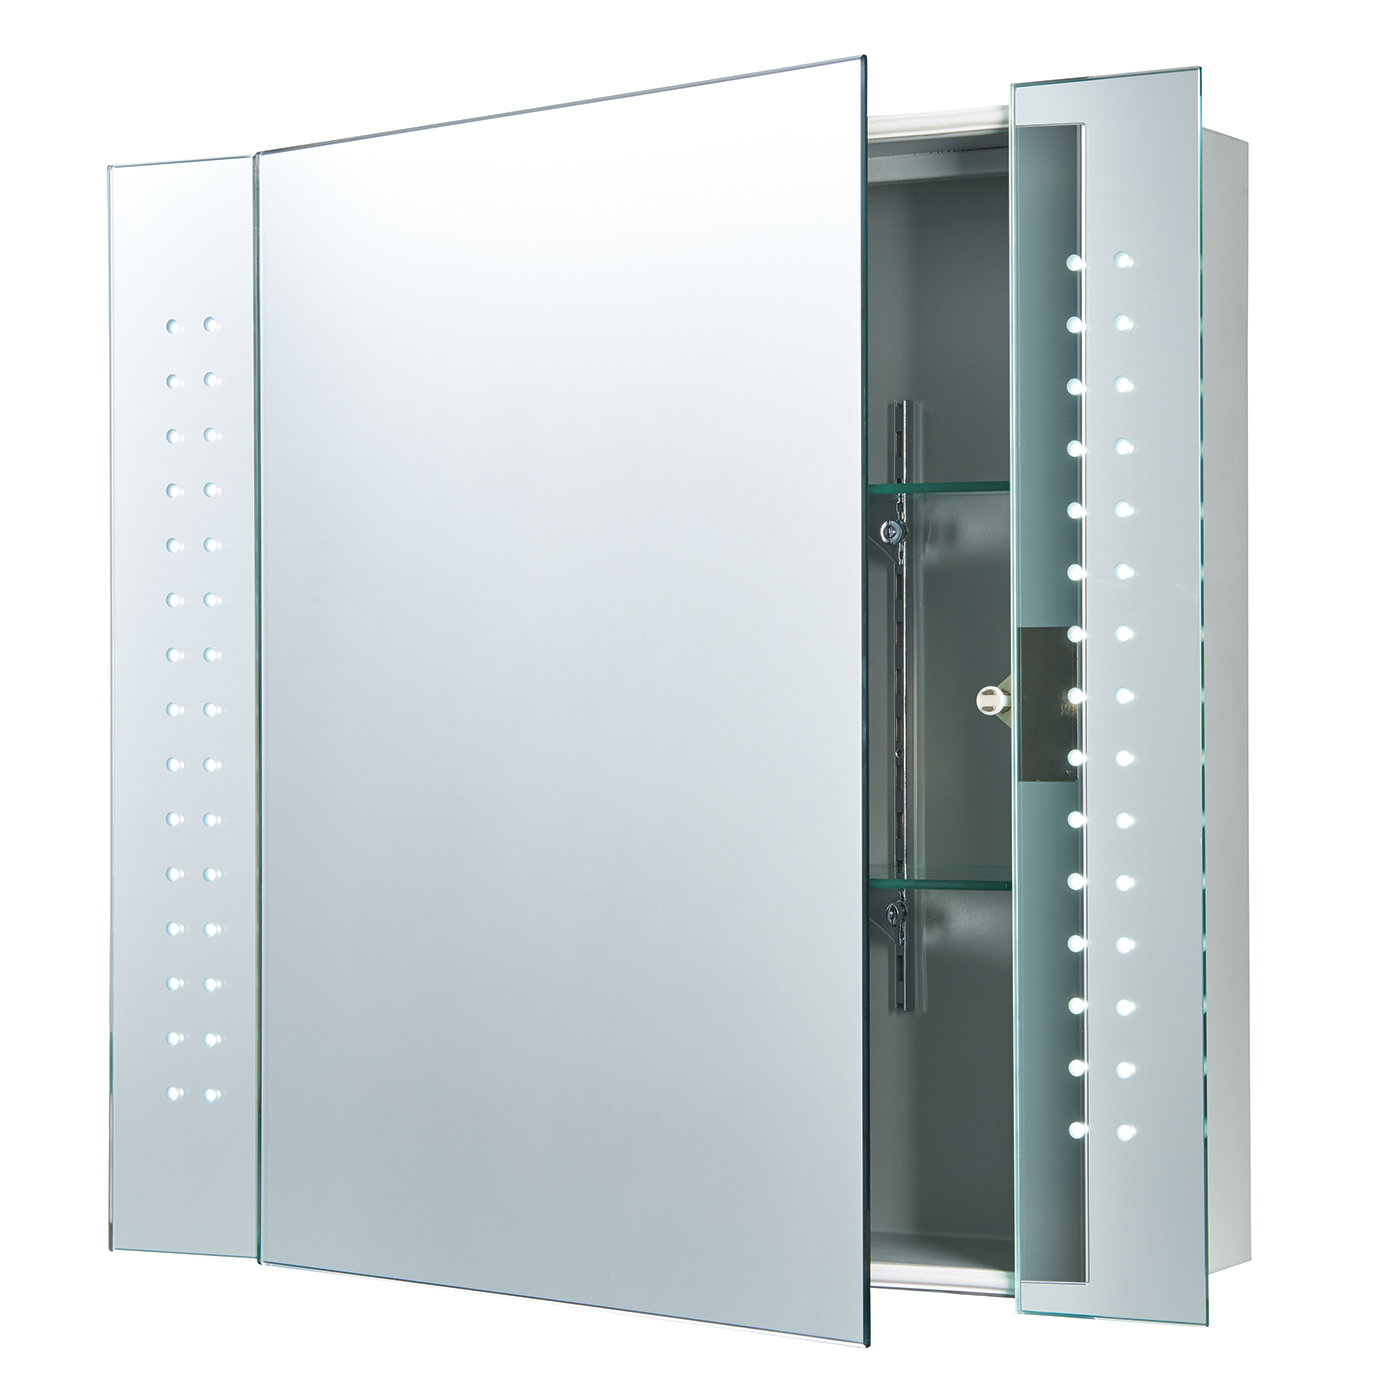 Endon Revelo LED shaver bathroom mirror cabinet IP44 5W sensor H: 600mm W: 650mm Thumbnail 1